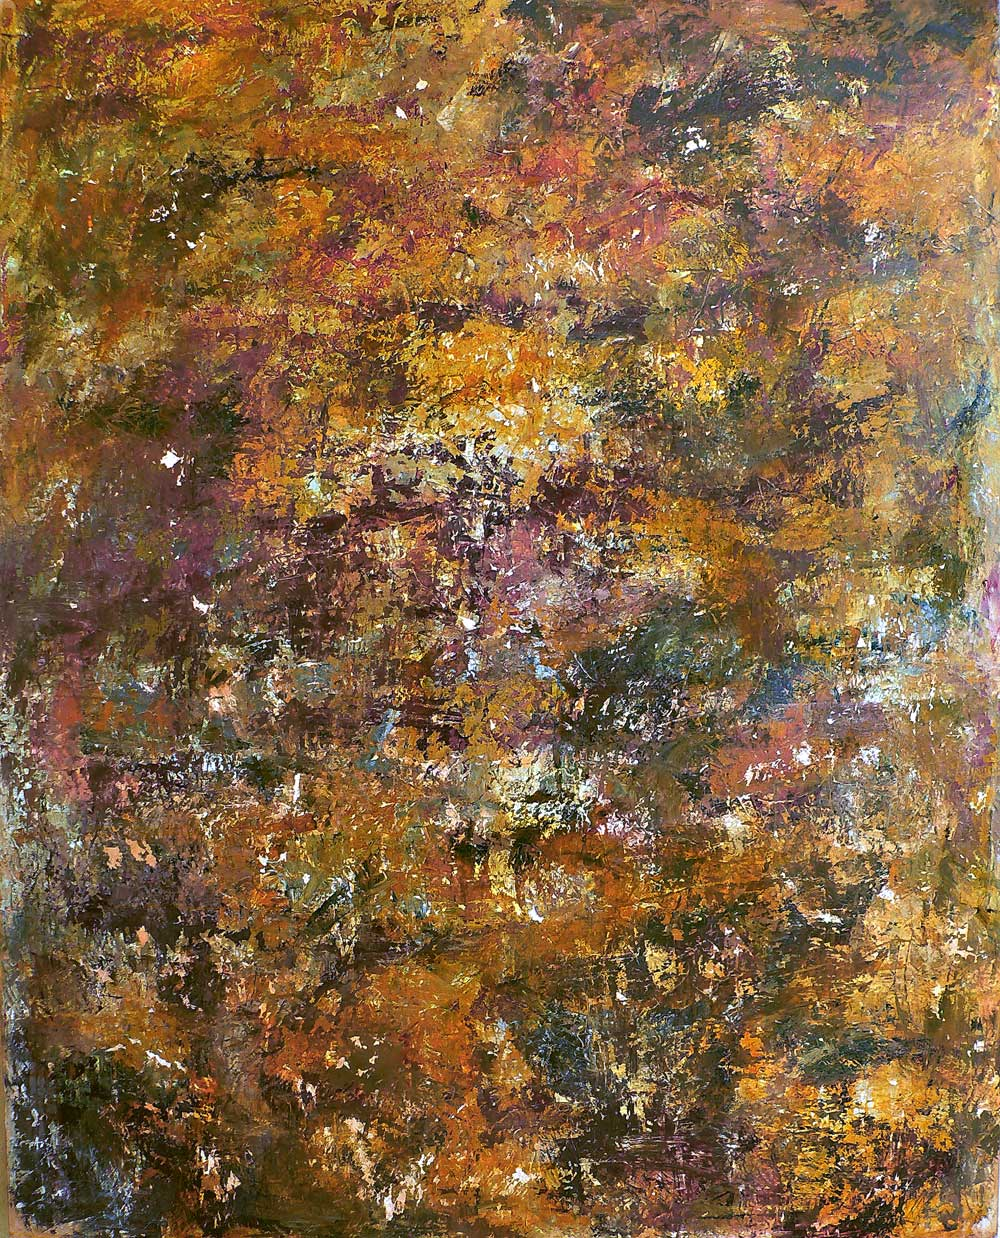 lullaby of birdland - 184 x 146 cm - acrylic and plaster on canvas - 2007